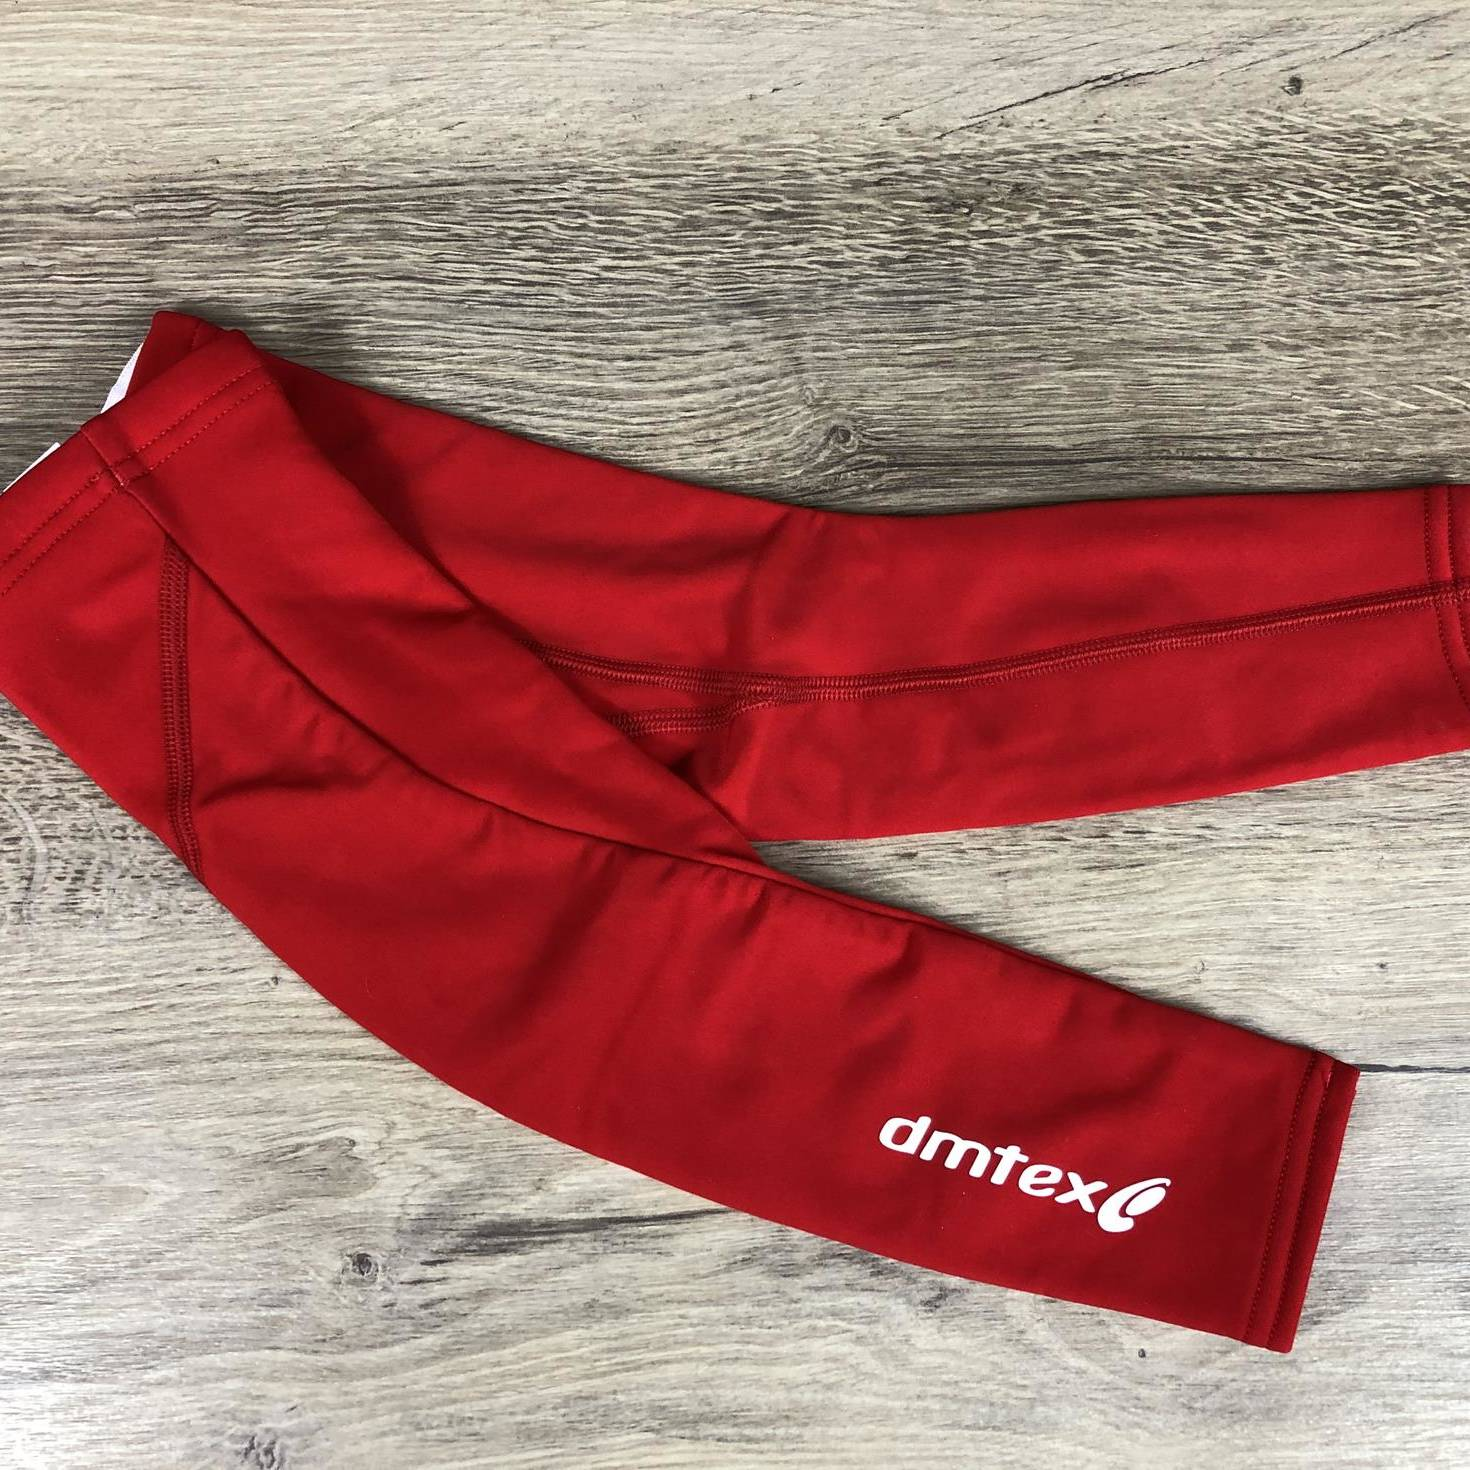 Thermal Arm Warmers - Polish National Team 00003129 (2)